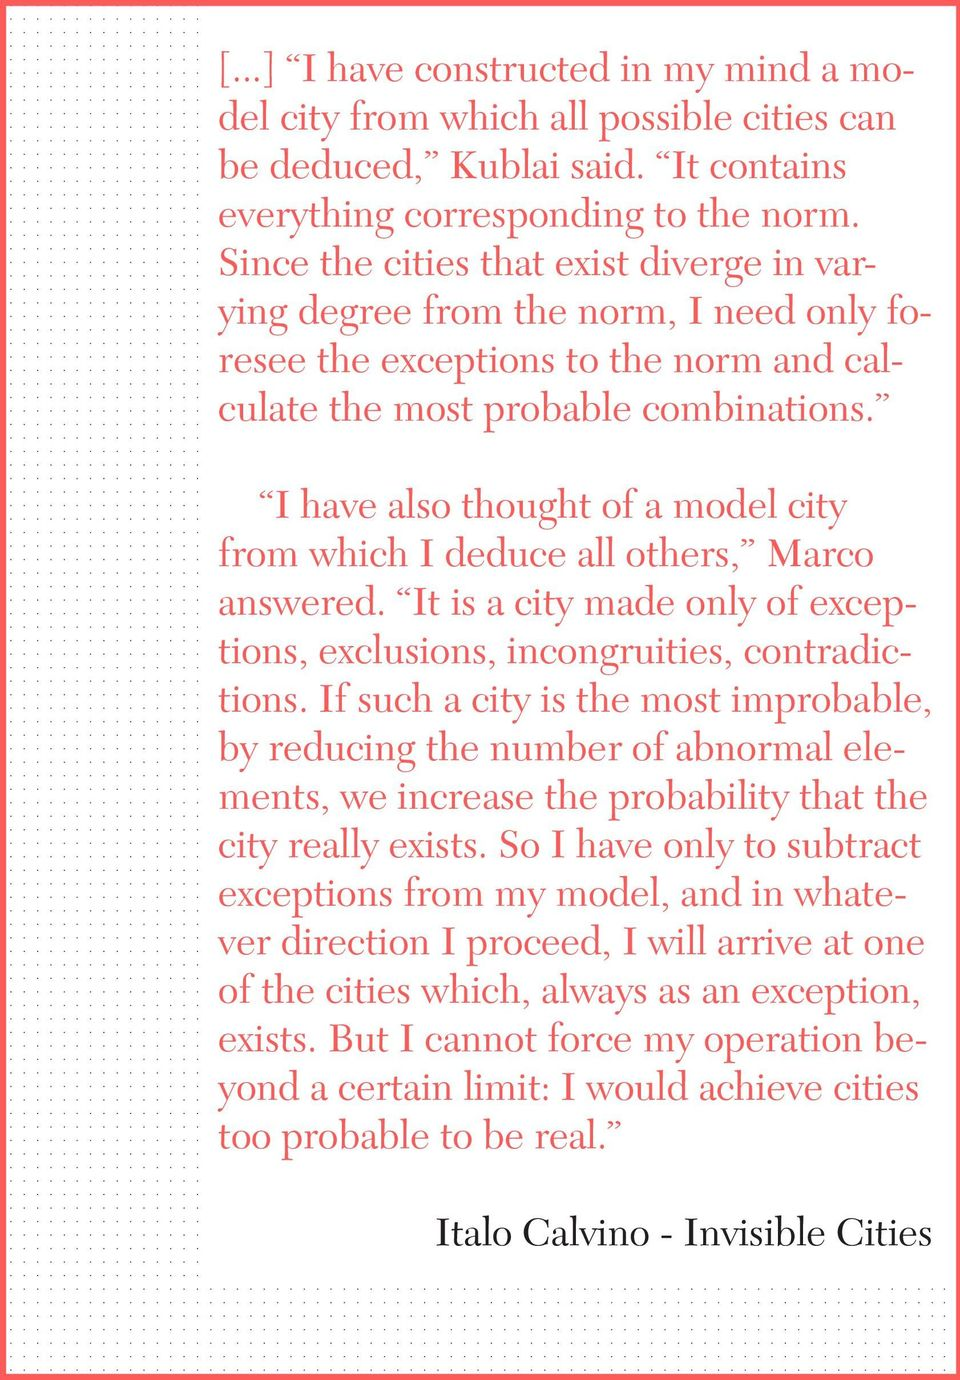 I have also thought of a model city from which I deduce all others, Marco answered. It is a city made only of exceptions, exclusions, incongruities, contradictions.